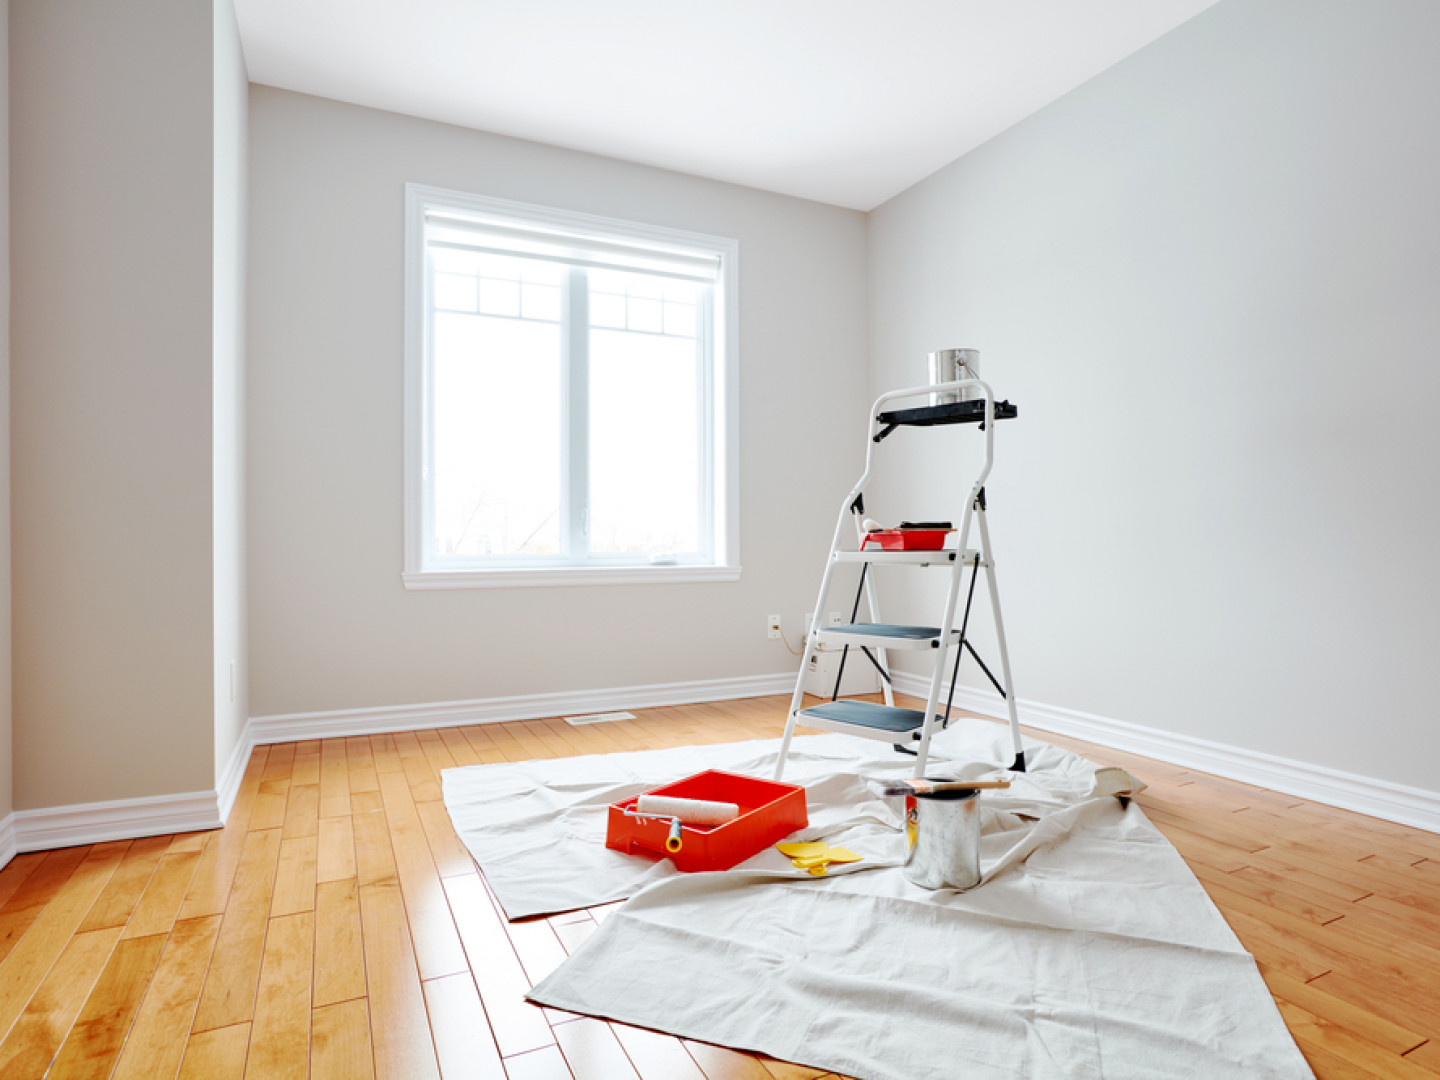 Looking to Revamp Your Home's Paint Job?